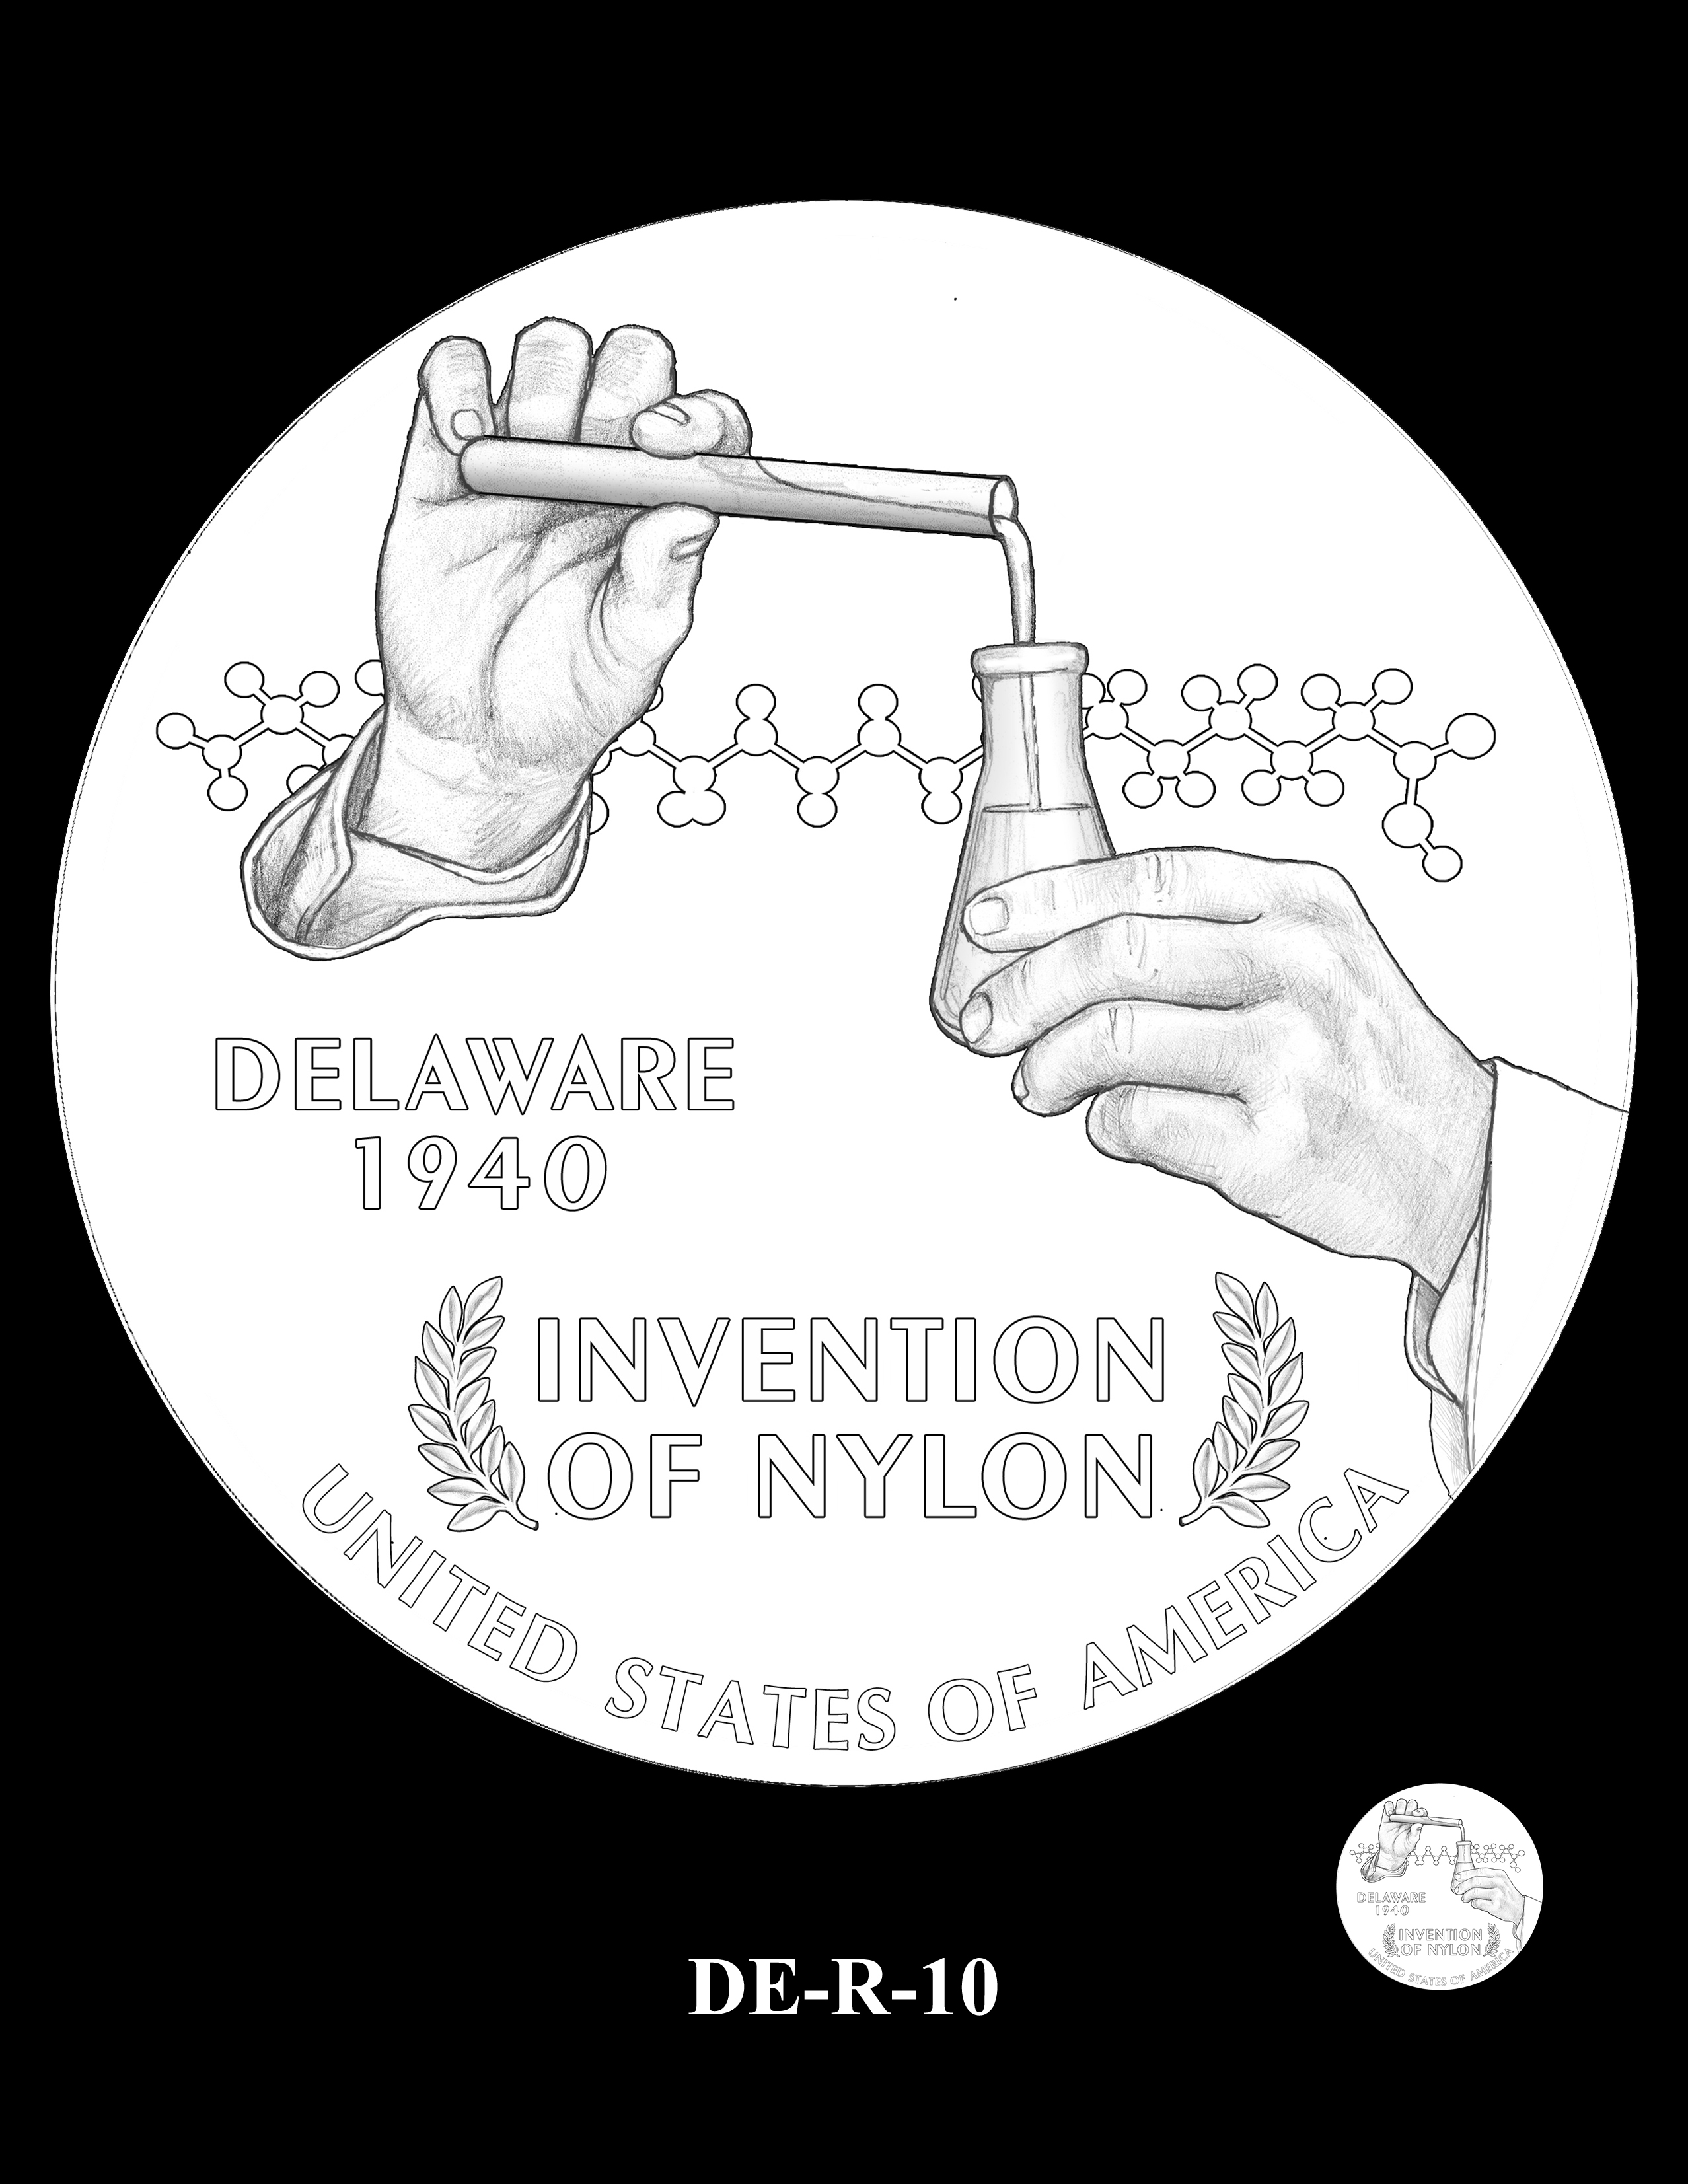 DE-R-10 -- 2019 American Innovation $1 Coin Program